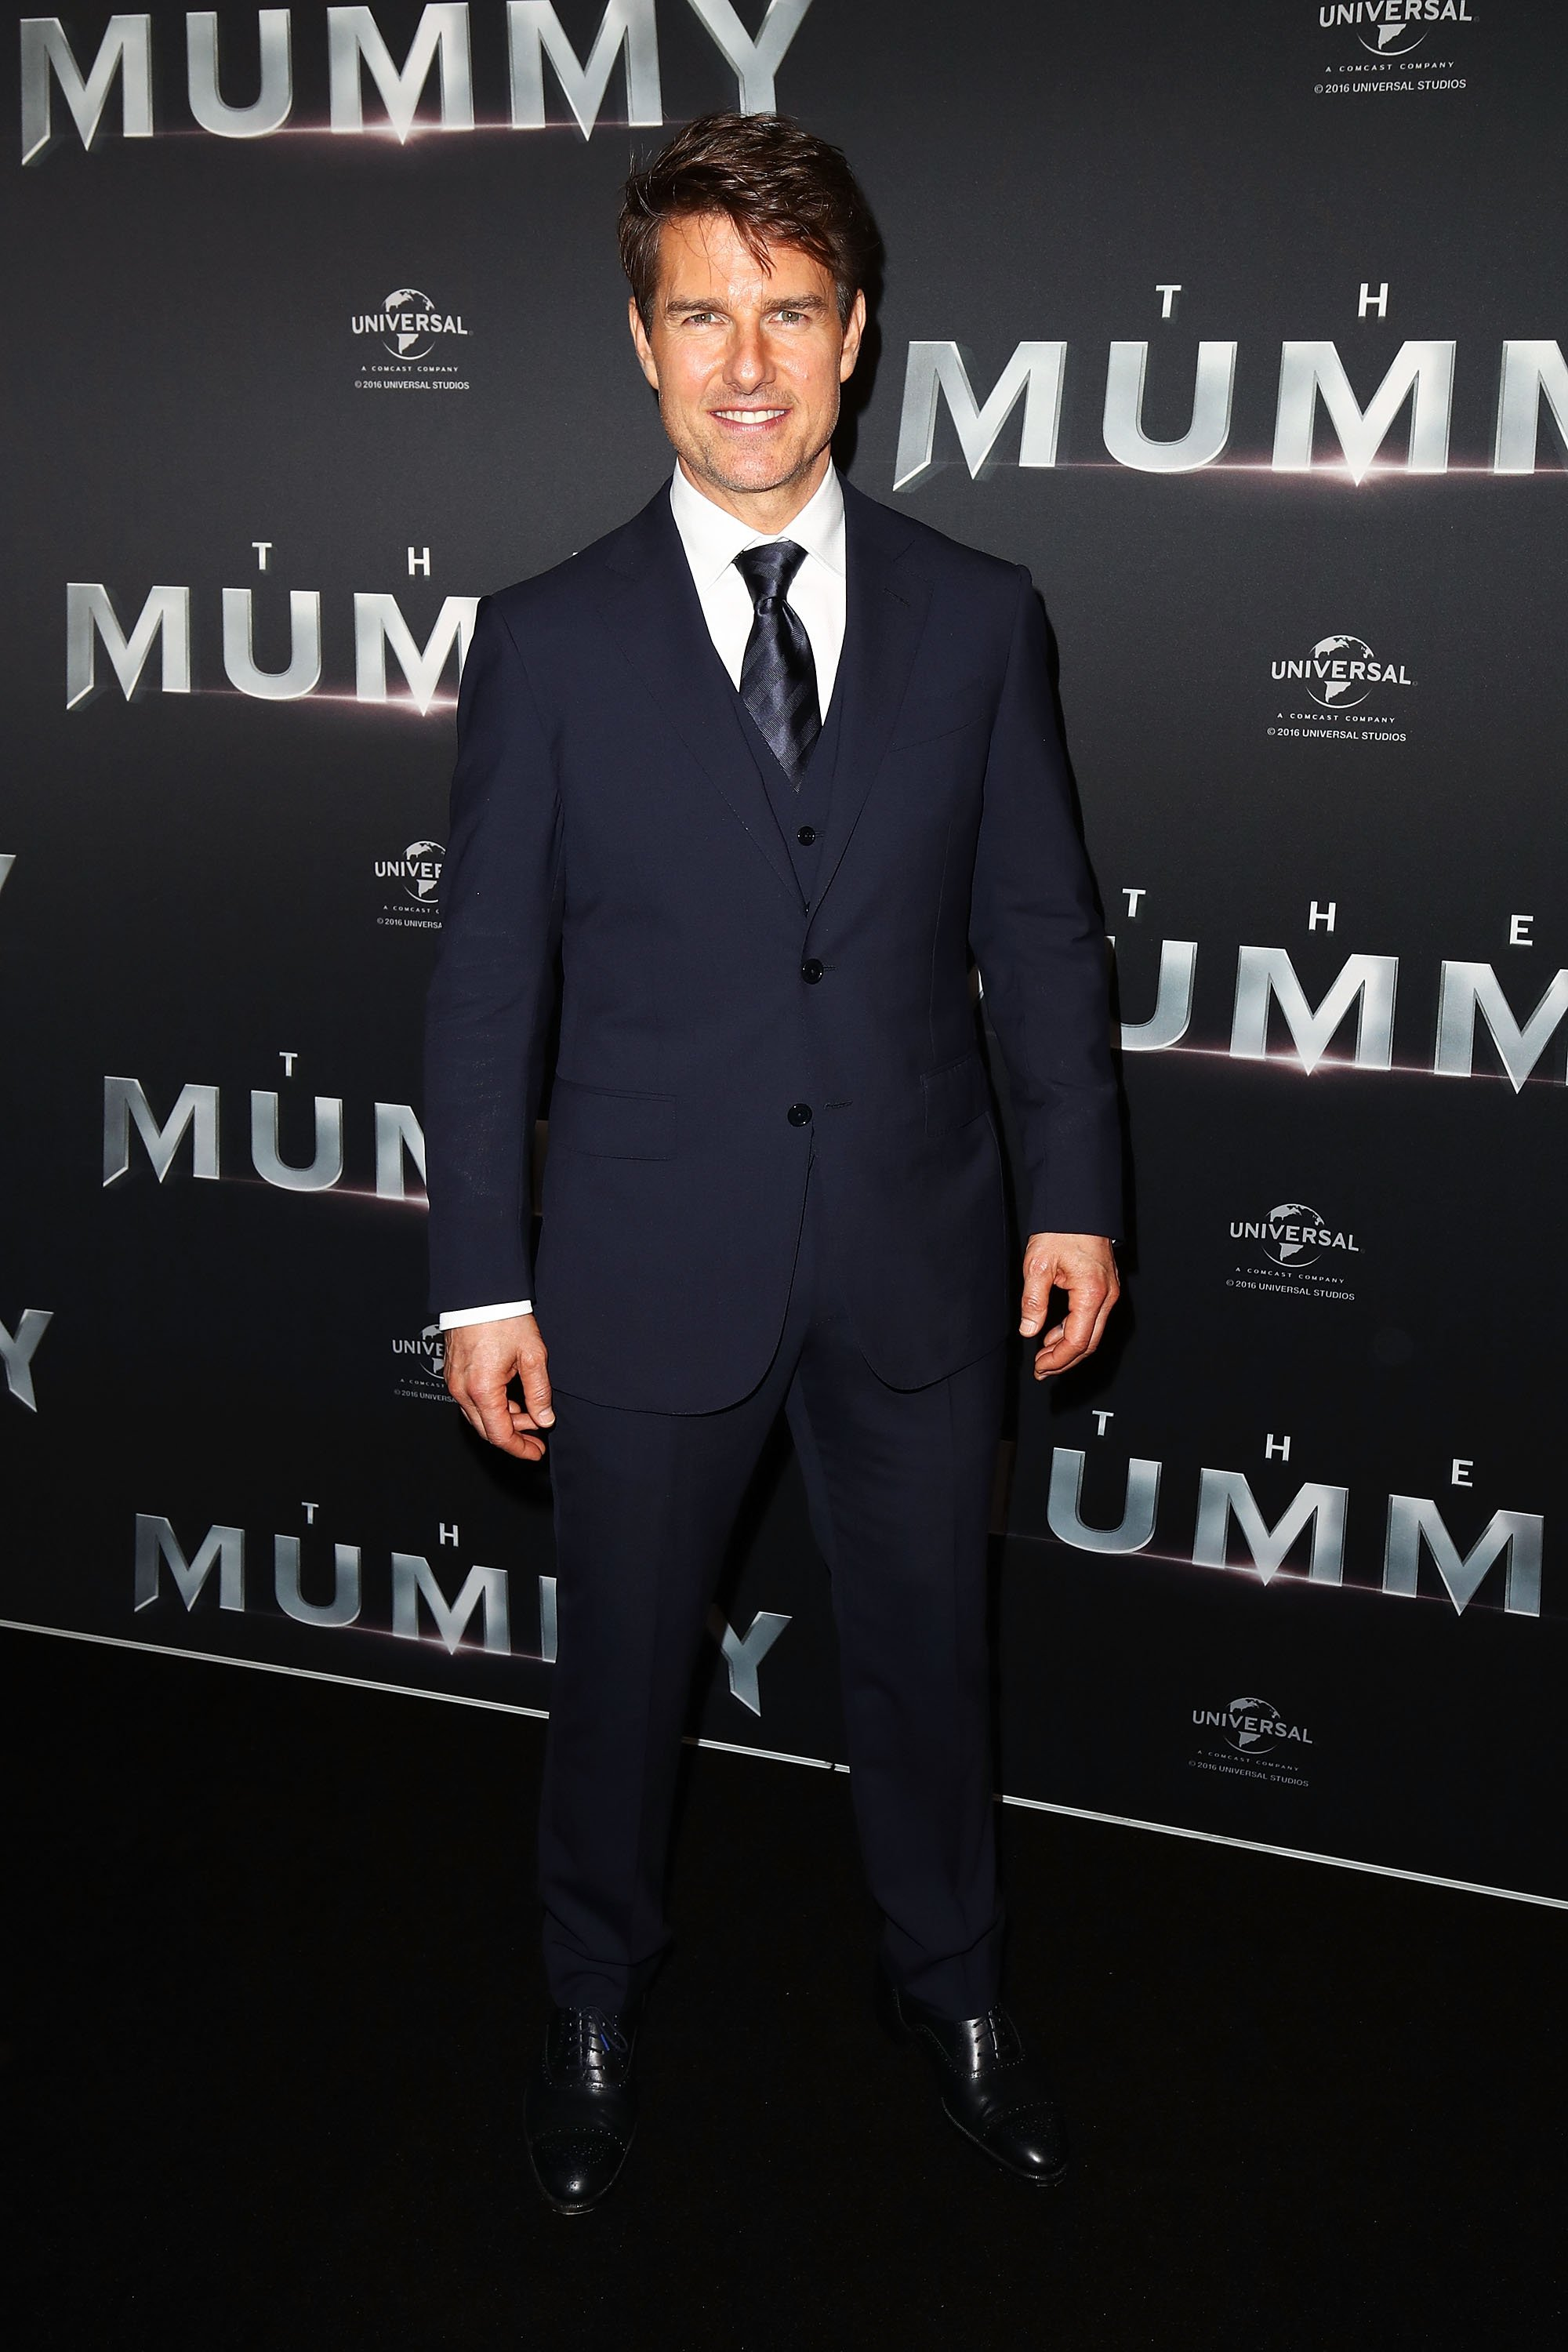 Tom Cruise arrives ahead of 'The Mummy' Australian premiere at State Theatre on May 22, 2017 in Sydney